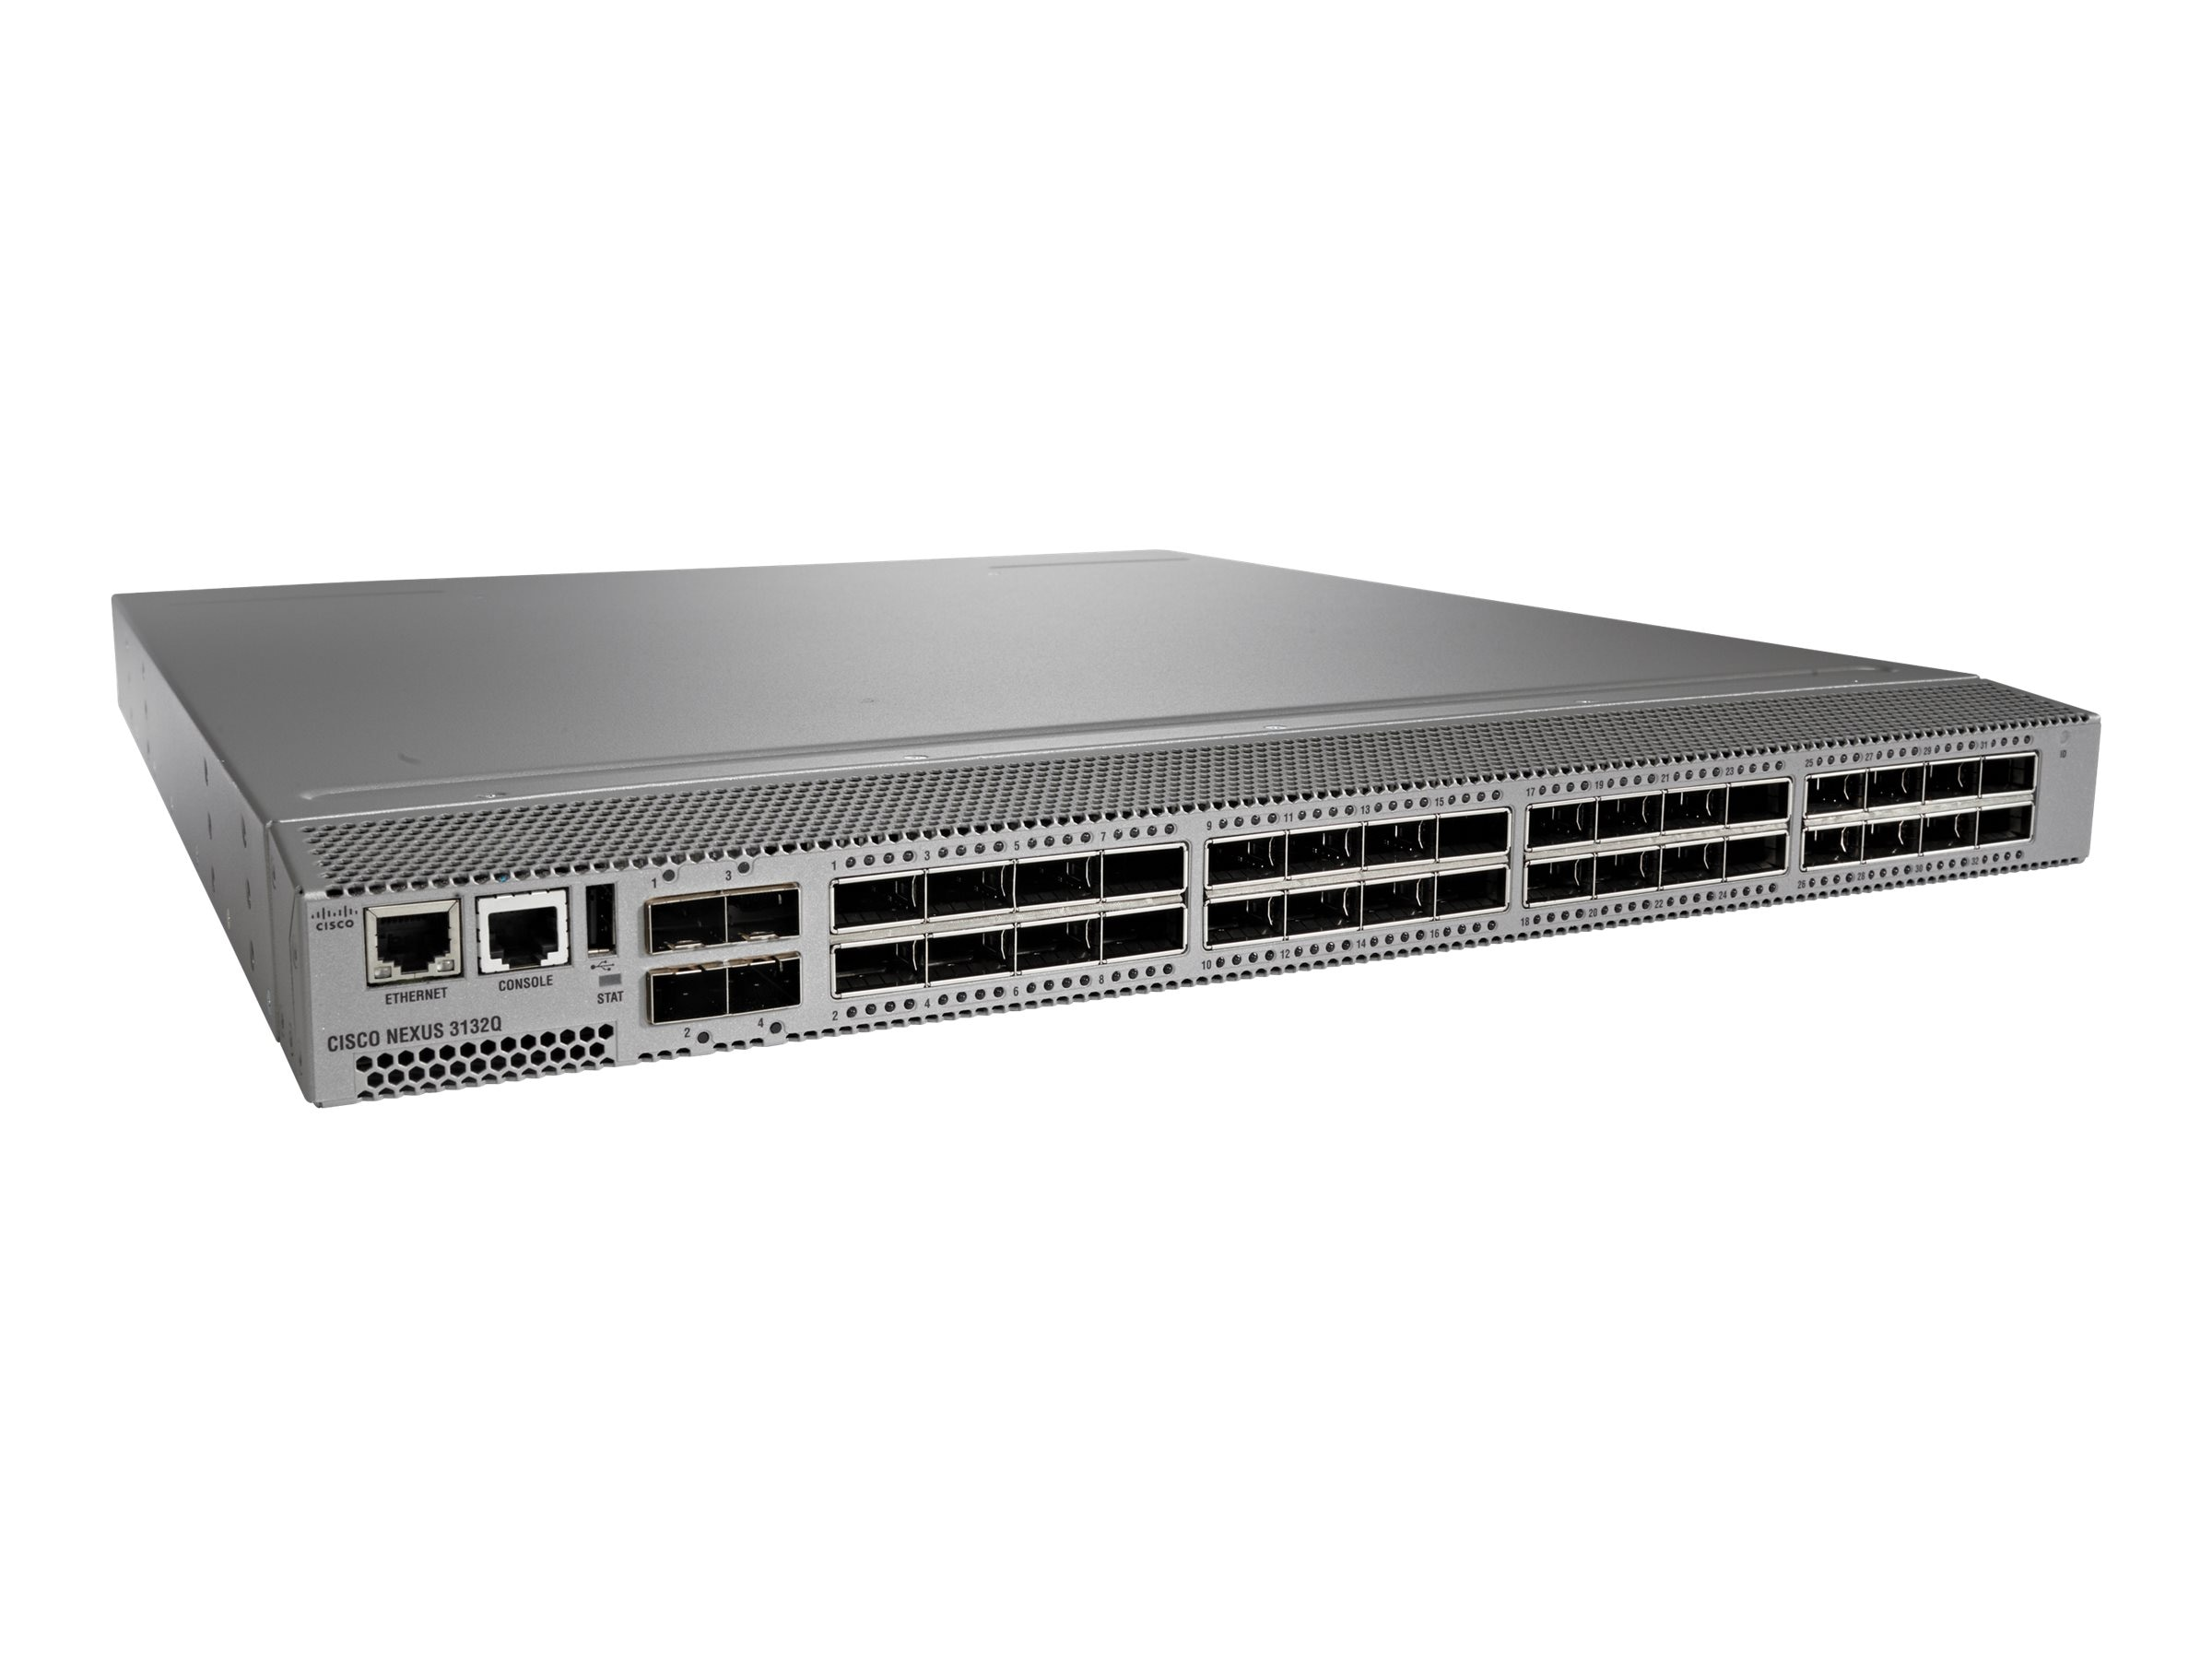 Cisco Nexus 3132Q Switch, Rev. Airflow, PT AC PSU, LAN EN